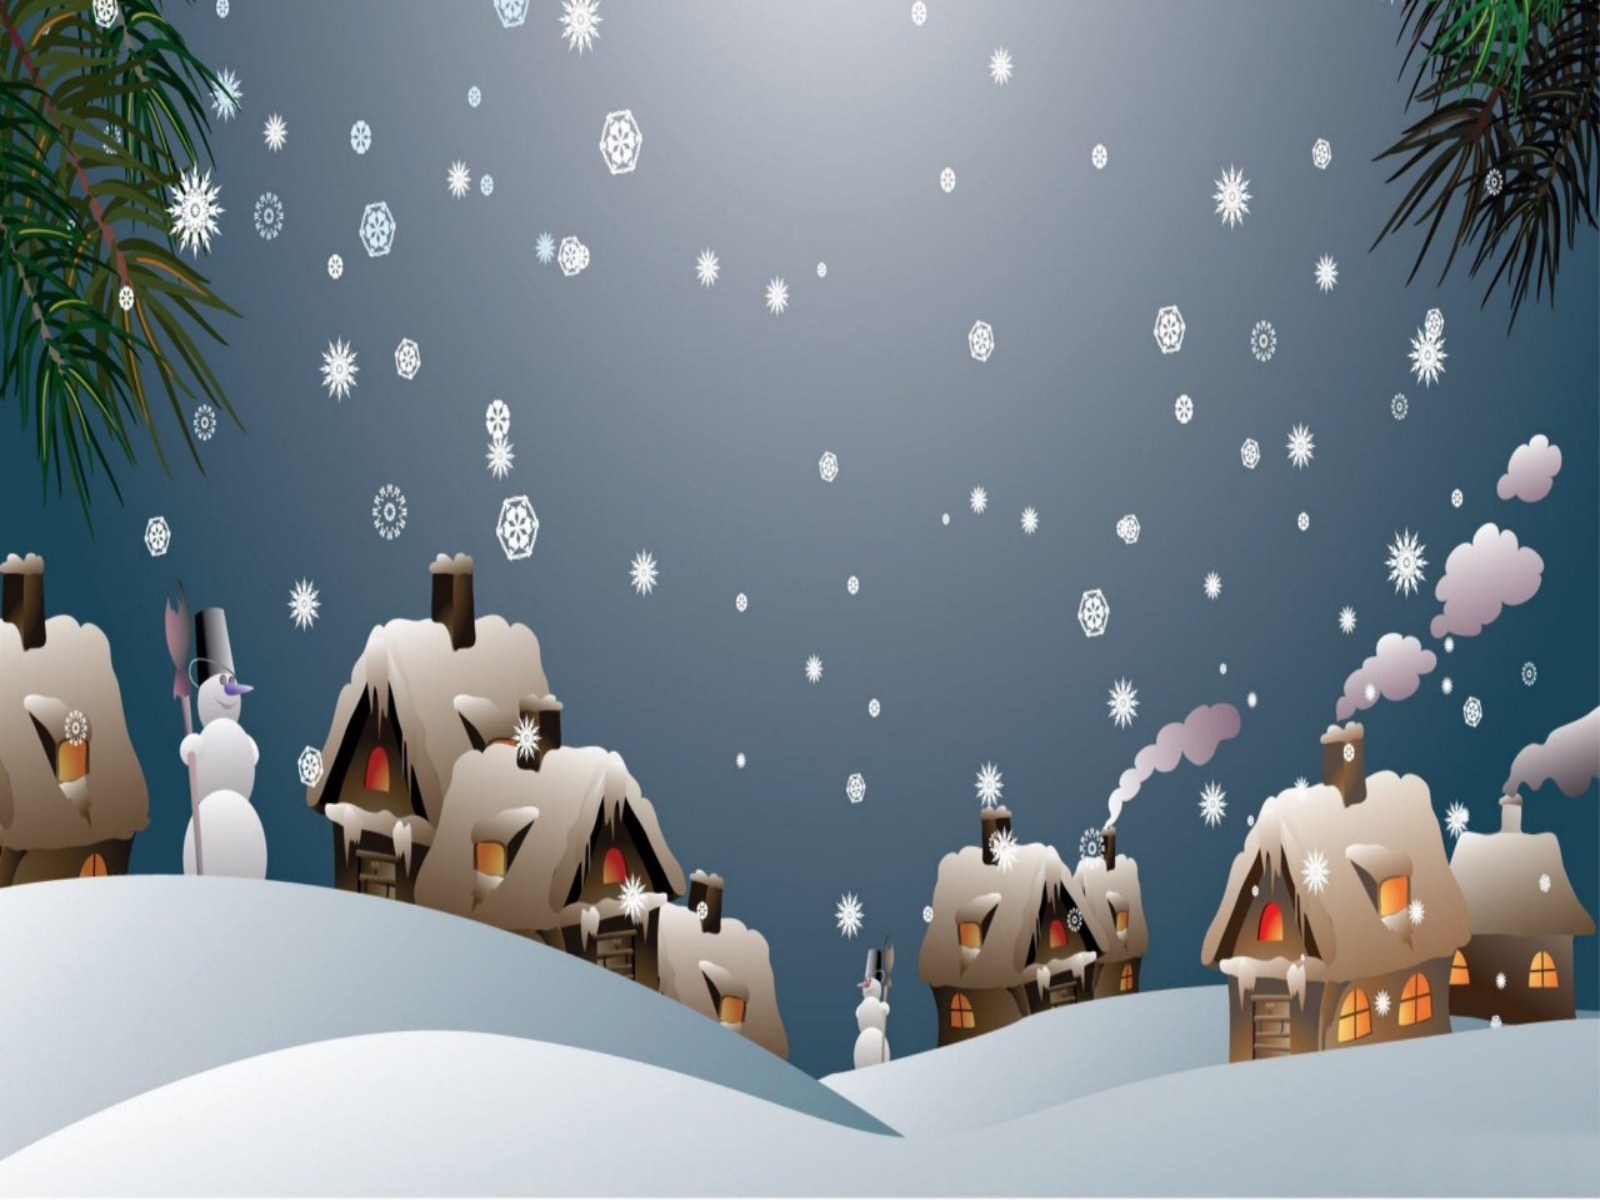 Snowy Christmas Animated Wallpaper Jpeg Iphone Wallpapers And 1600x1200